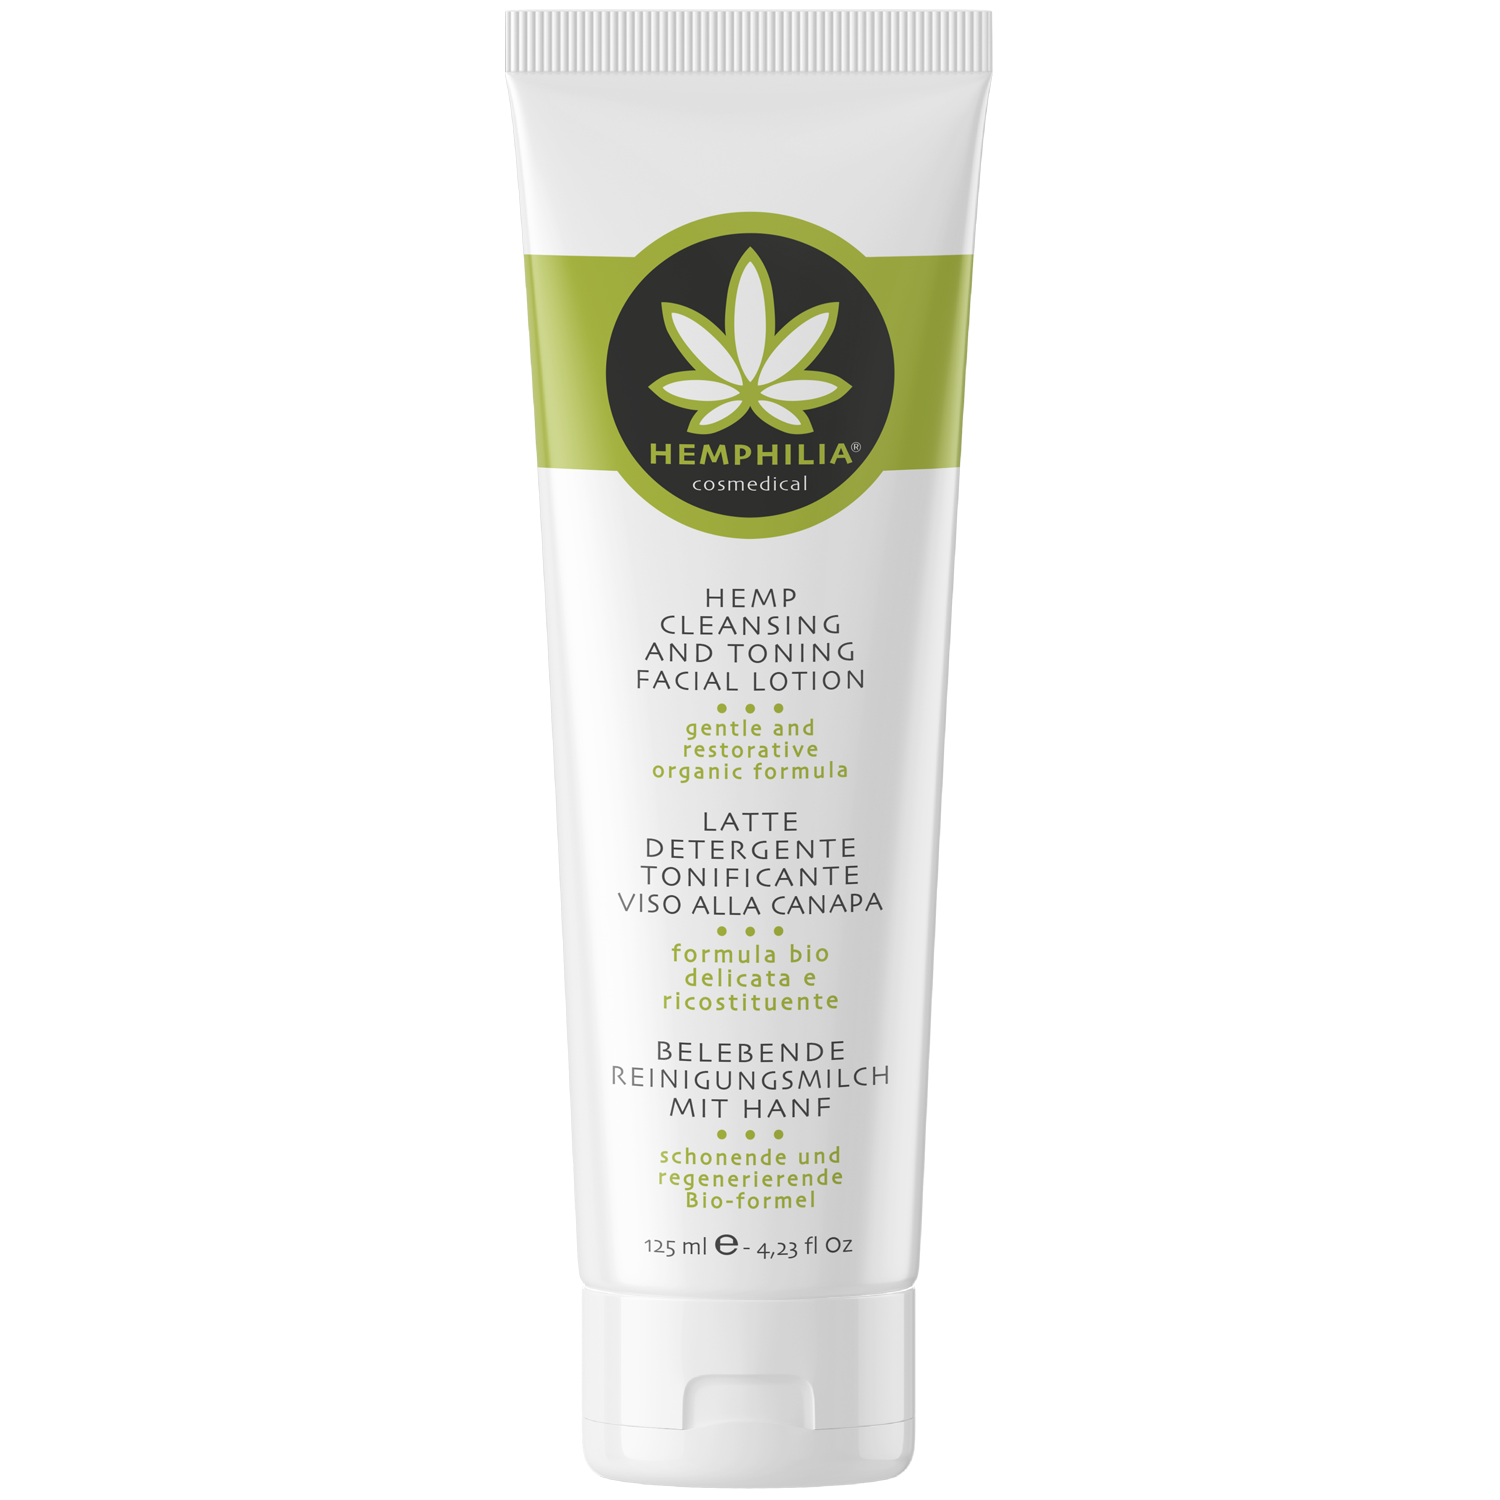 HEMP CLEANSING AND TONING FACIAL LOTION